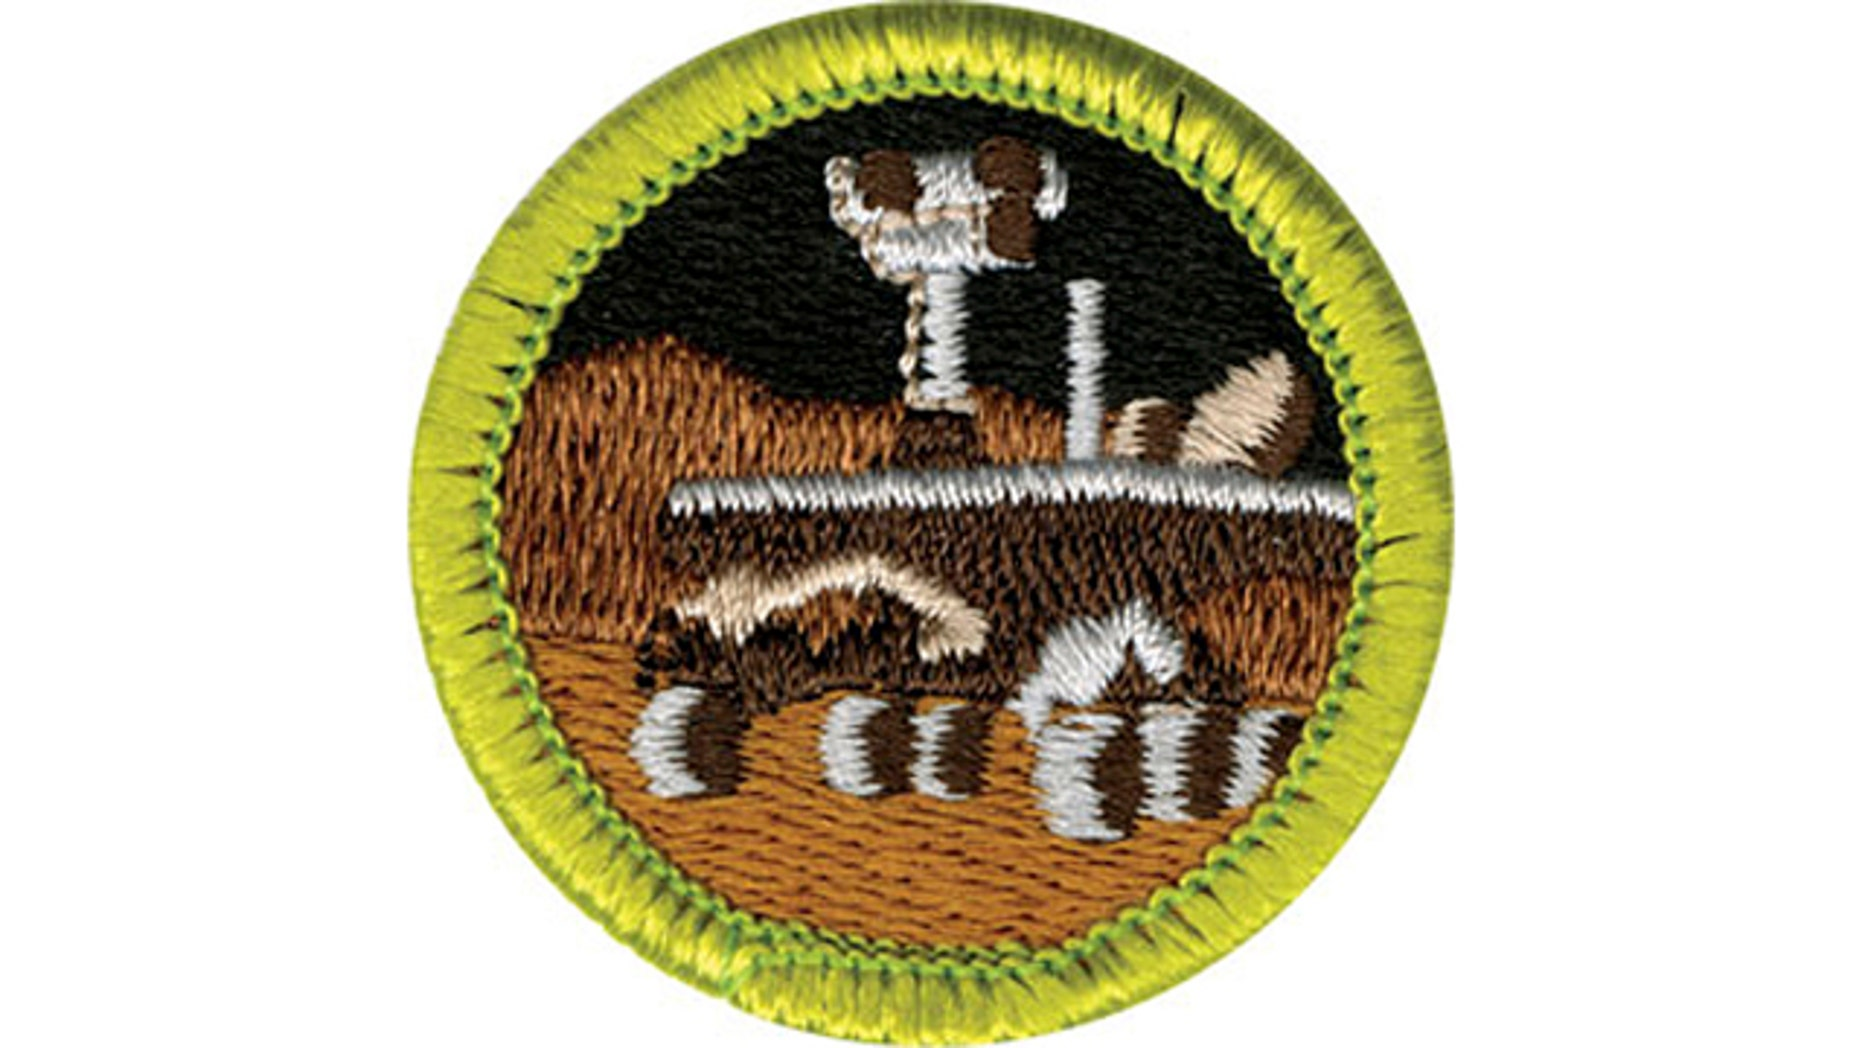 April 7, 2011: The Boy Scouts of America unveiled their new Robotics merit badge, which depicts NASA's Mars rover. The badge will be unveiled next week as part of its efforts to emphasize science, technology, engineering and math.